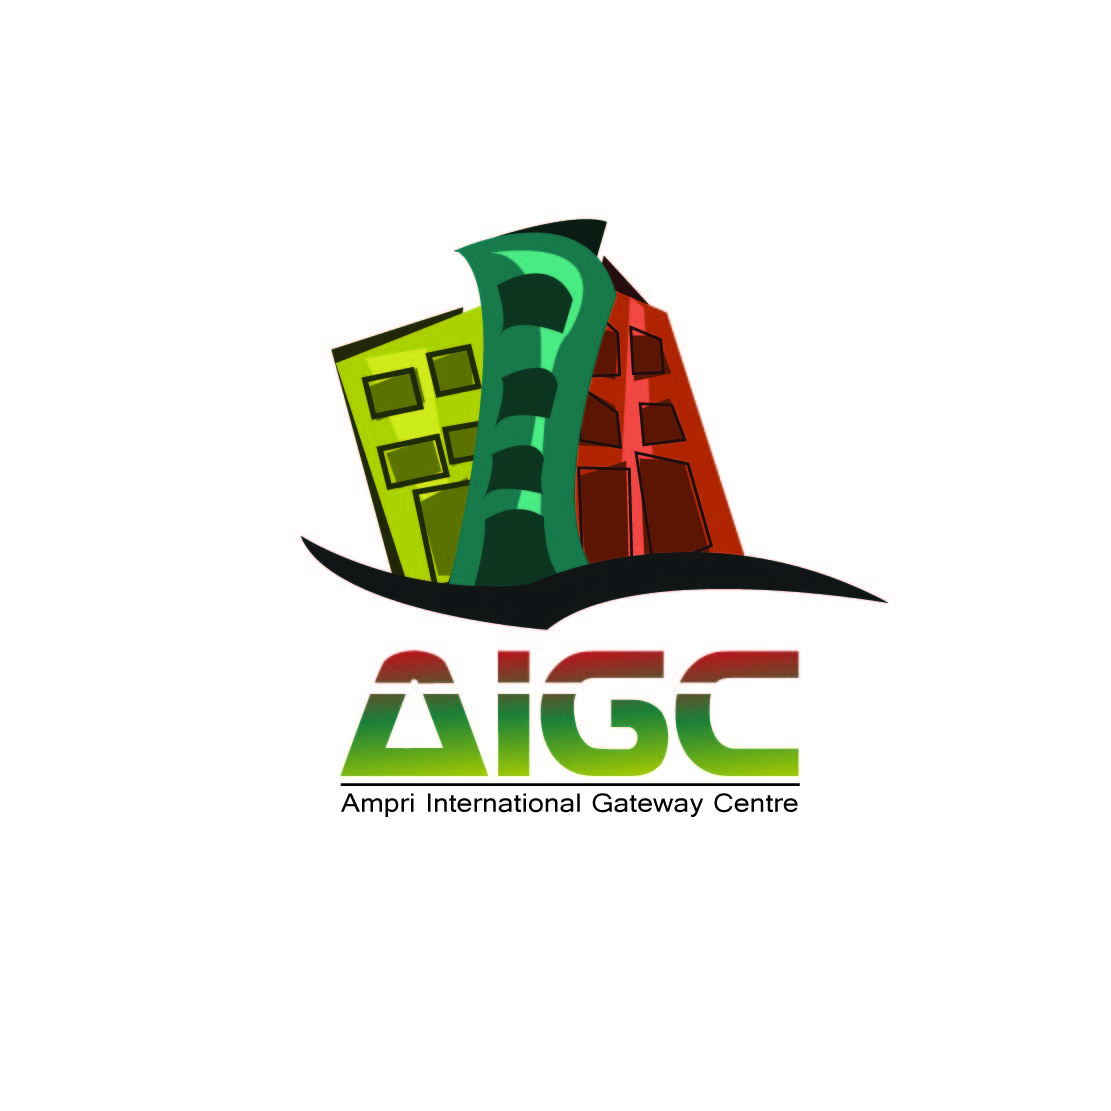 Logo Design by Saunter - Entry No. 2 in the Logo Design Contest Ampri International Gateway Centre (AIGC).